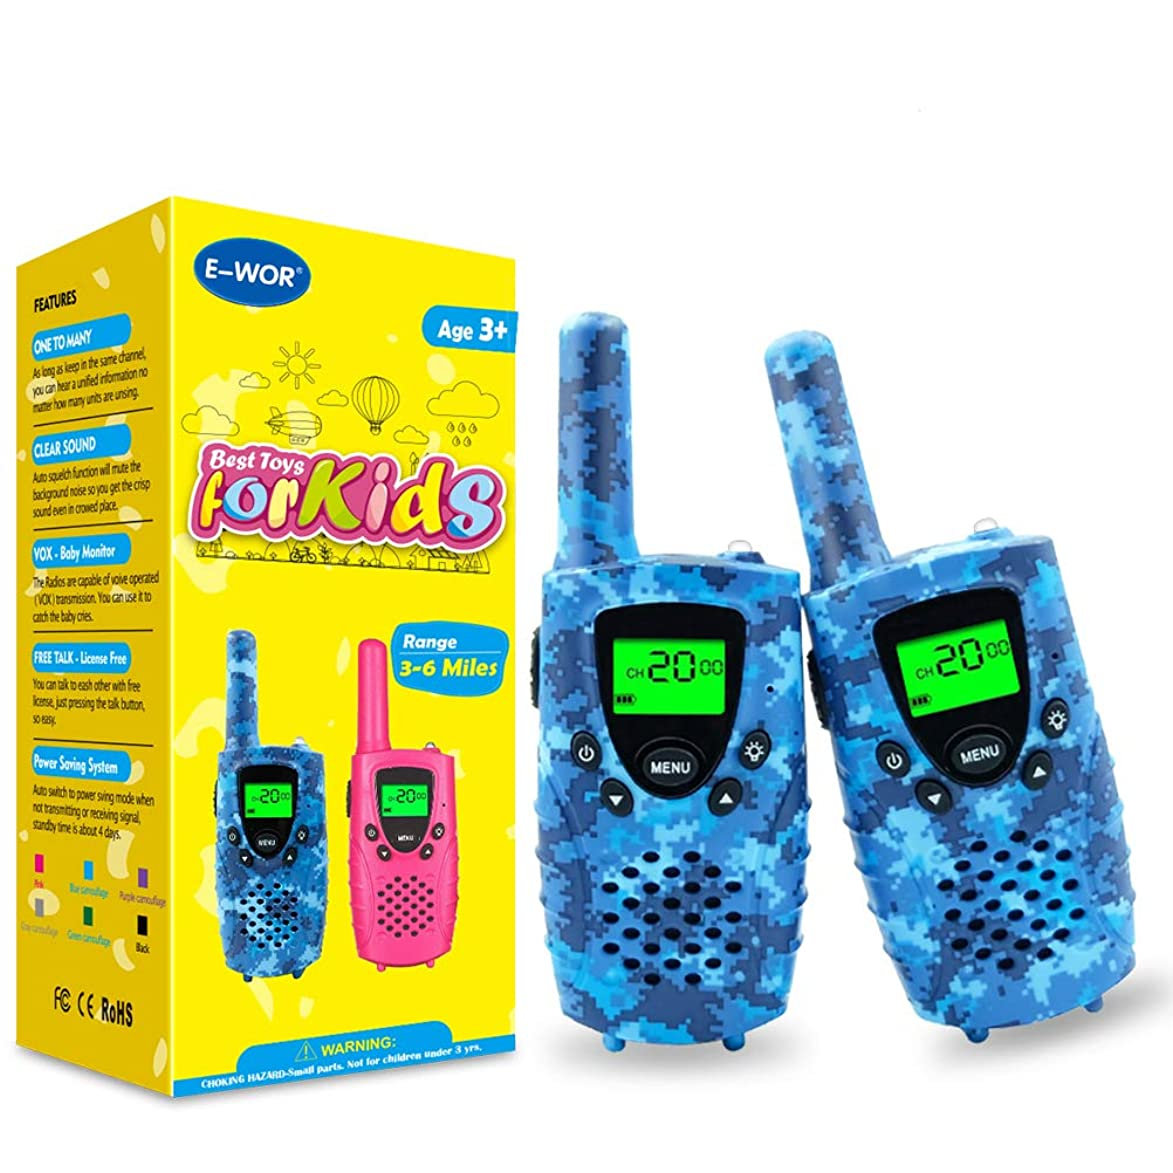 Walkies Talkies for Kids, 22 Channels FRS/GMRS UHF Two Way Radios 4 Miles Handheld Mini Kids Walkie Talkies for Boys Girls Best Gifts Kids Toys Built in Flashlight, Pink (T38-Blue)